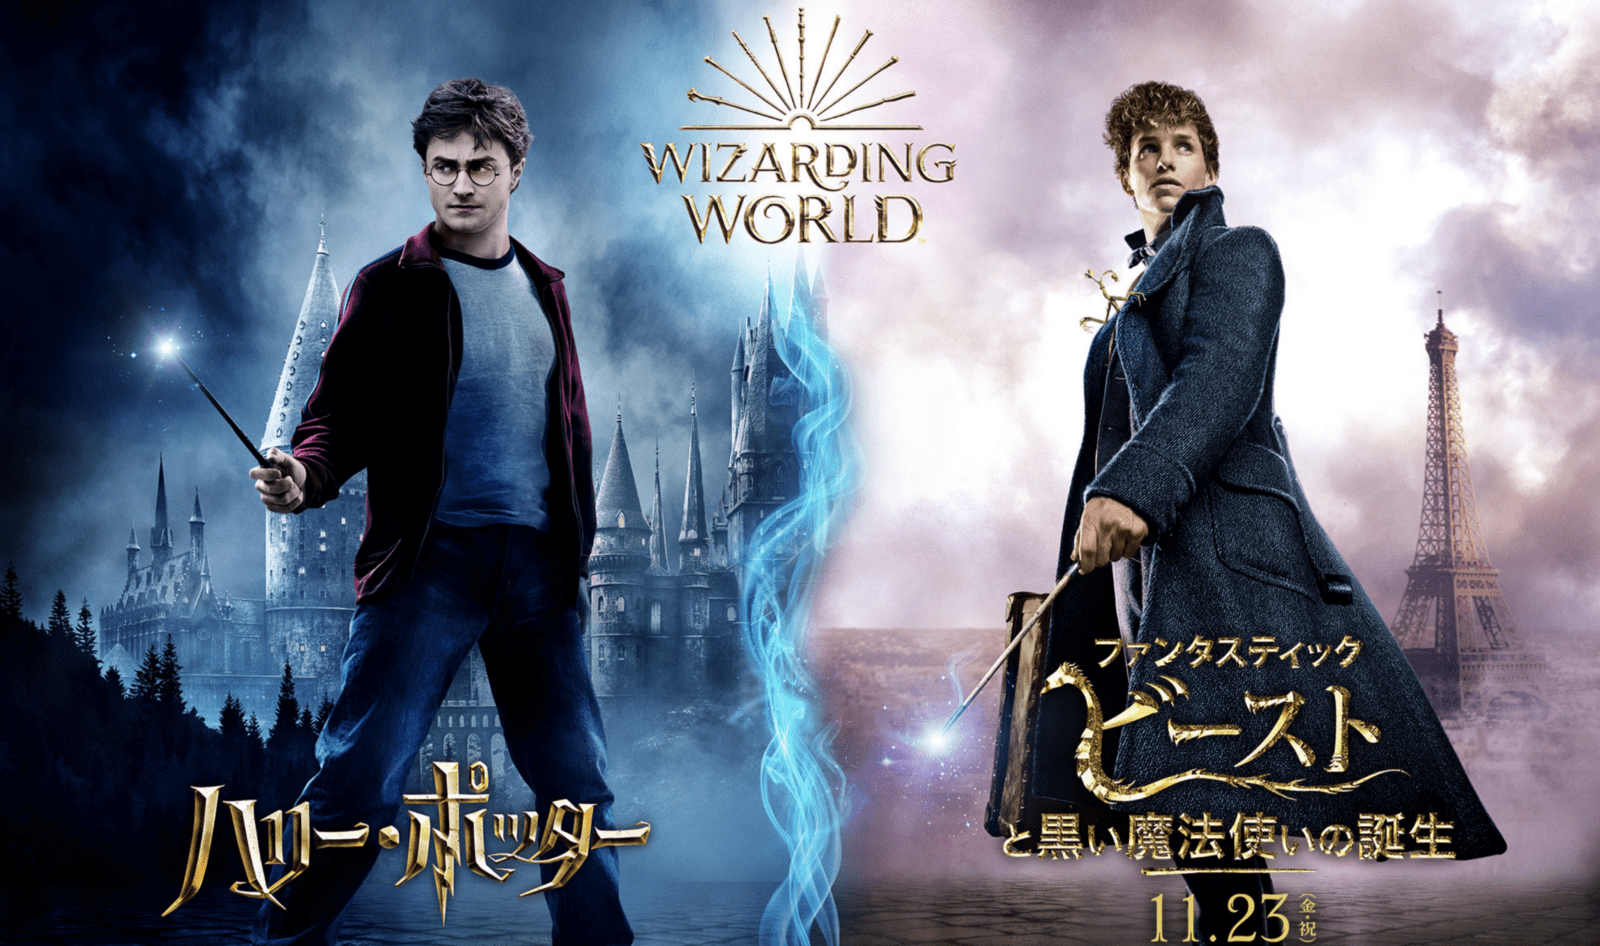 Harry Potter Cafe Opens in Japan: WIZARDING WORLD Cafe